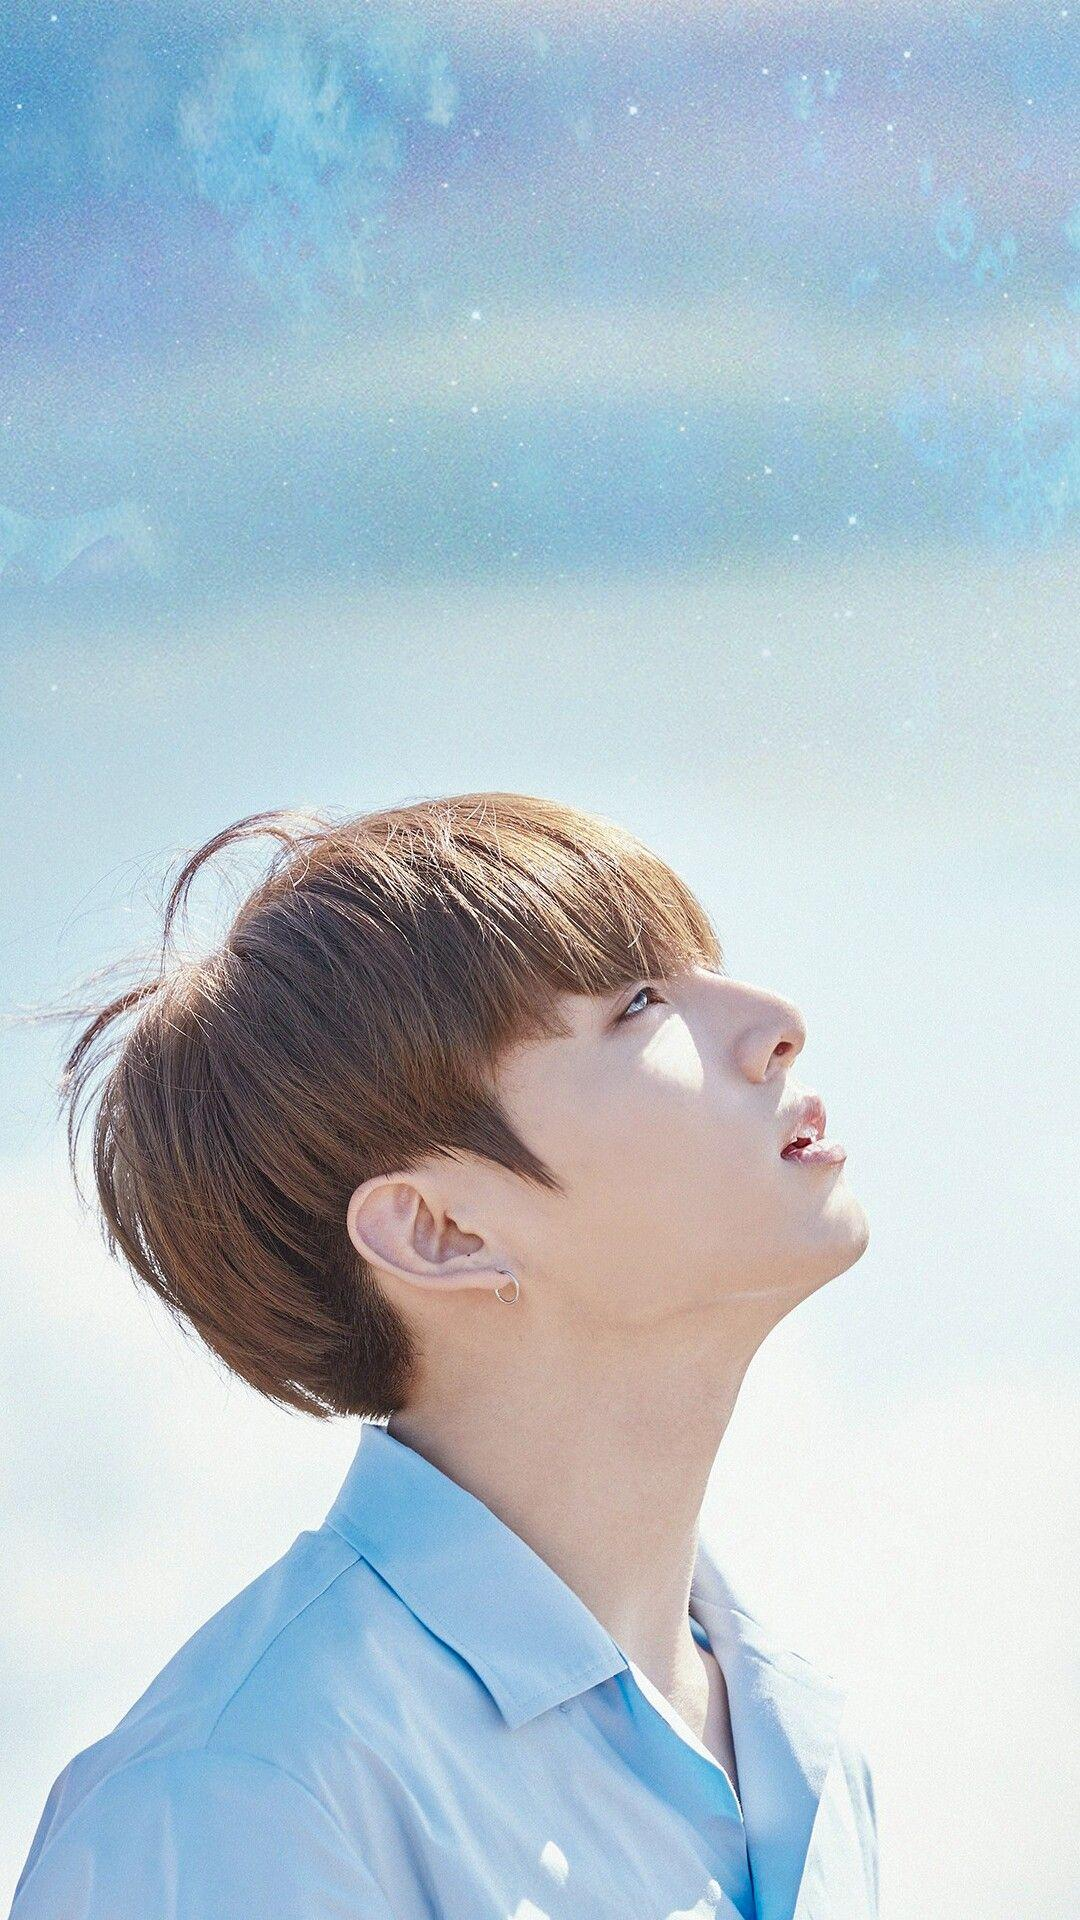 Jungkook wallpapers BTS 2018 Season's greetings ♡